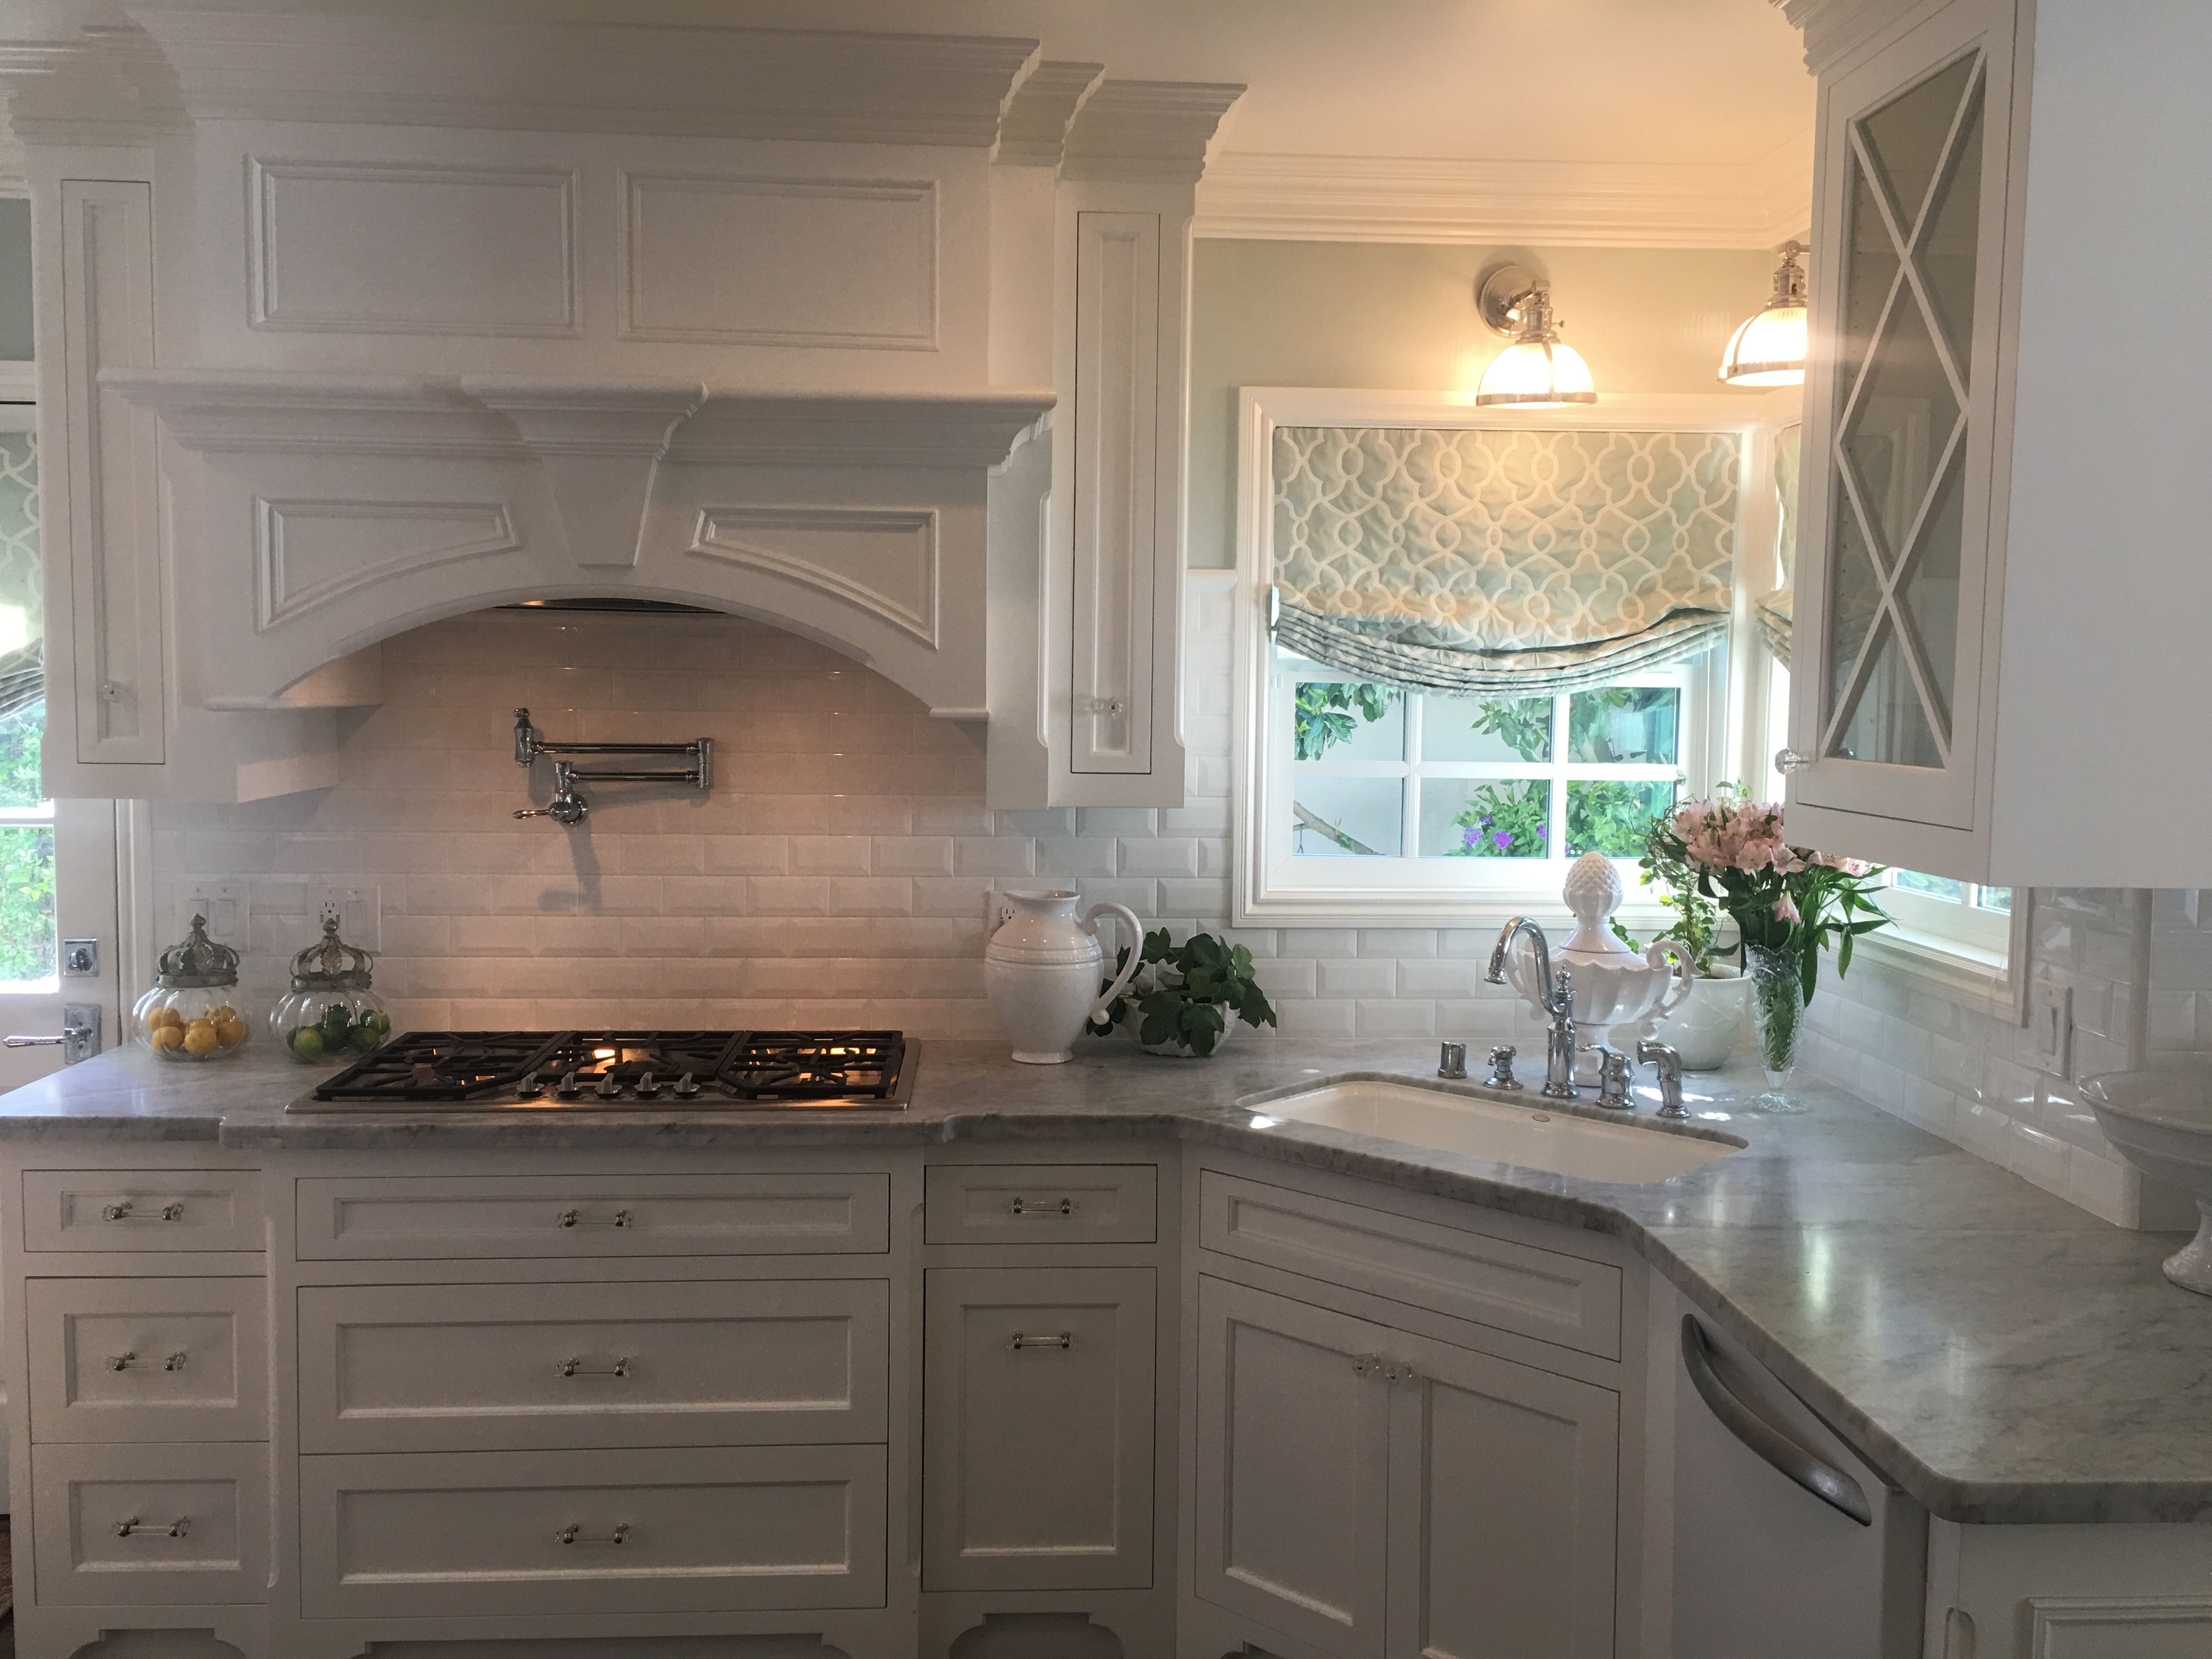 The kitchen I designed.  This is about a third of the space